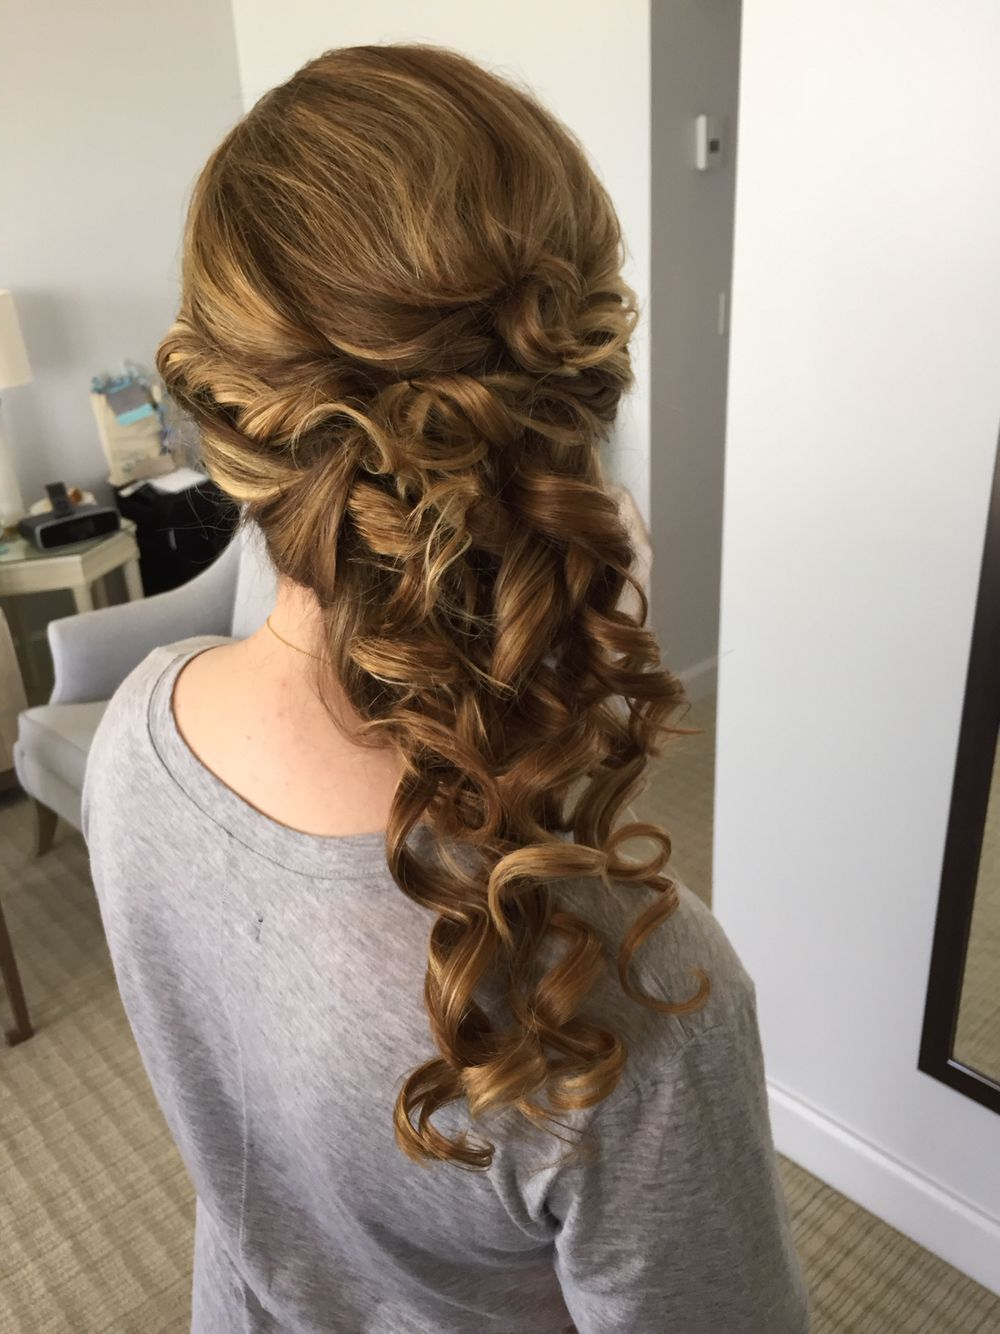 Popular Fabulous Cascade Of Loose Curls Bridal Hairstyles With Cascading Curls, Side Pony, Bridal Hairstyle (View 7 of 20)